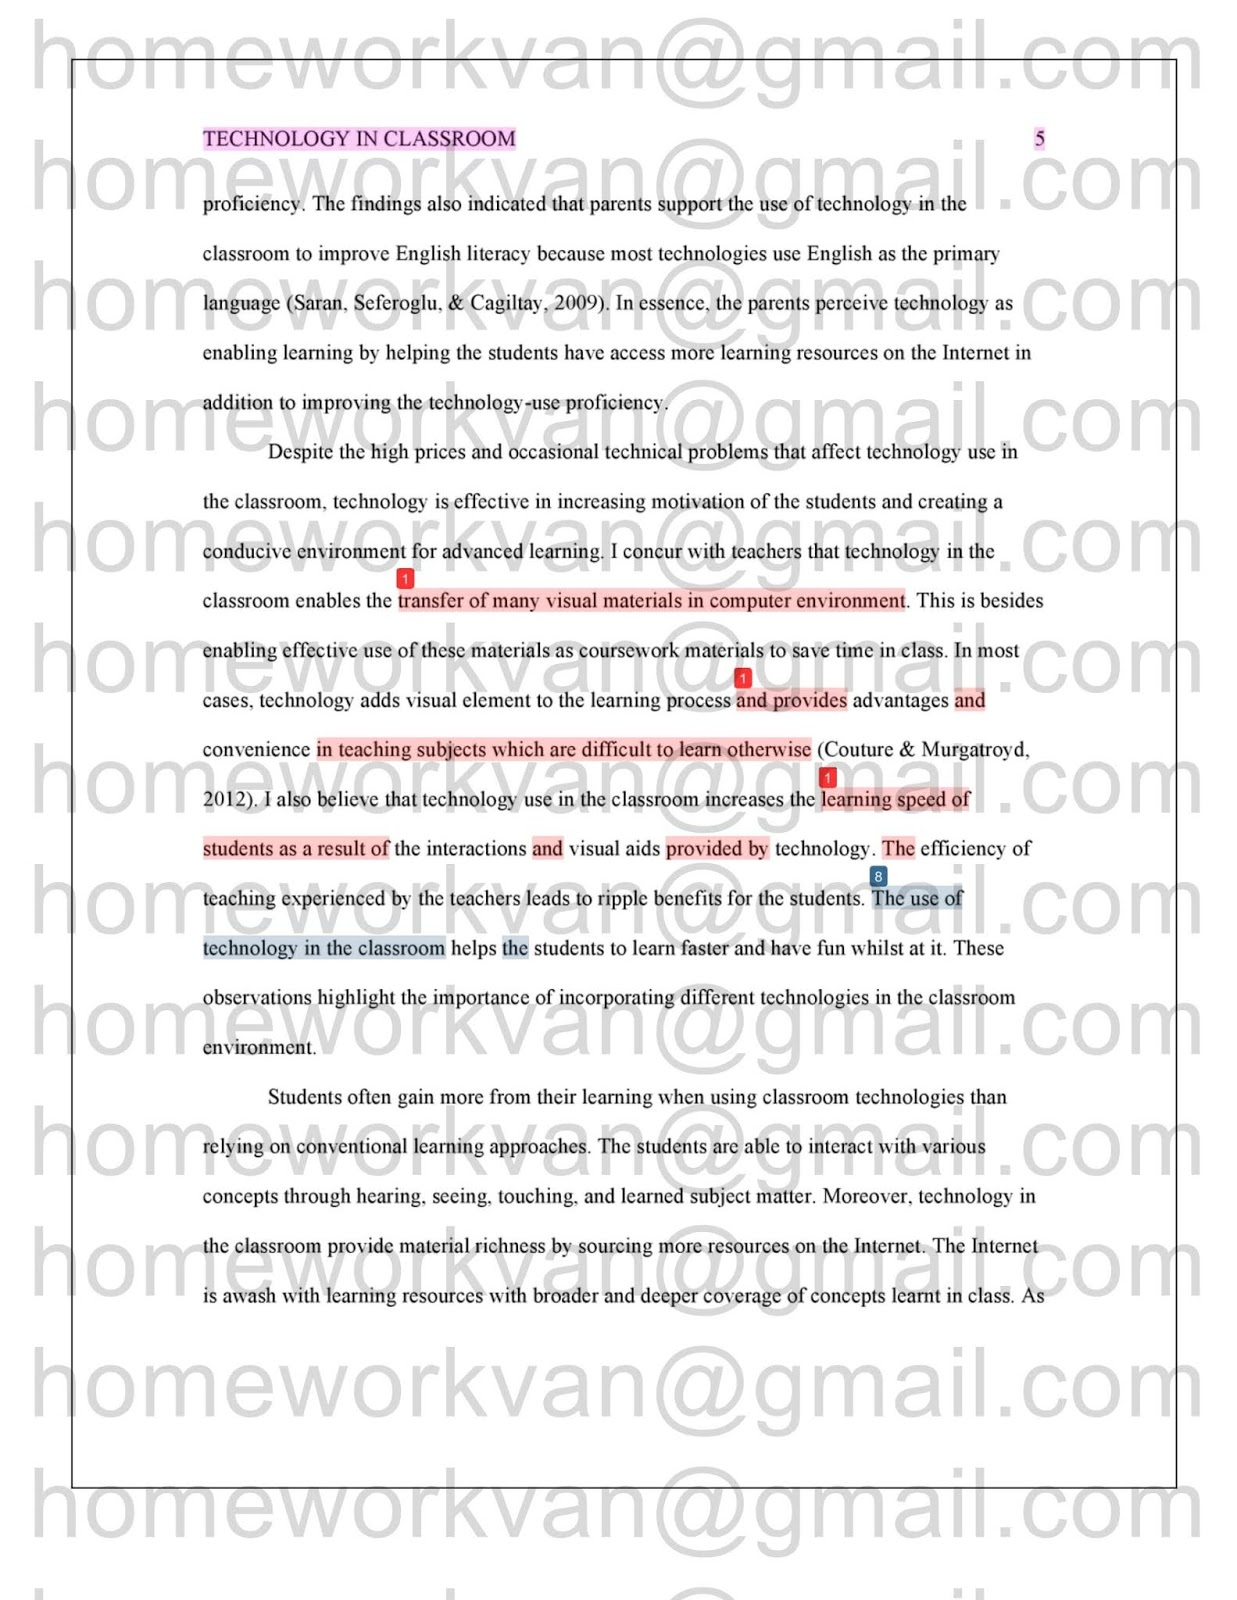 homeworkvan official blog    exploratory essay  the following is plagiarism report for    exploratory essay  technology in the classroom essay sample   by homeworkvan